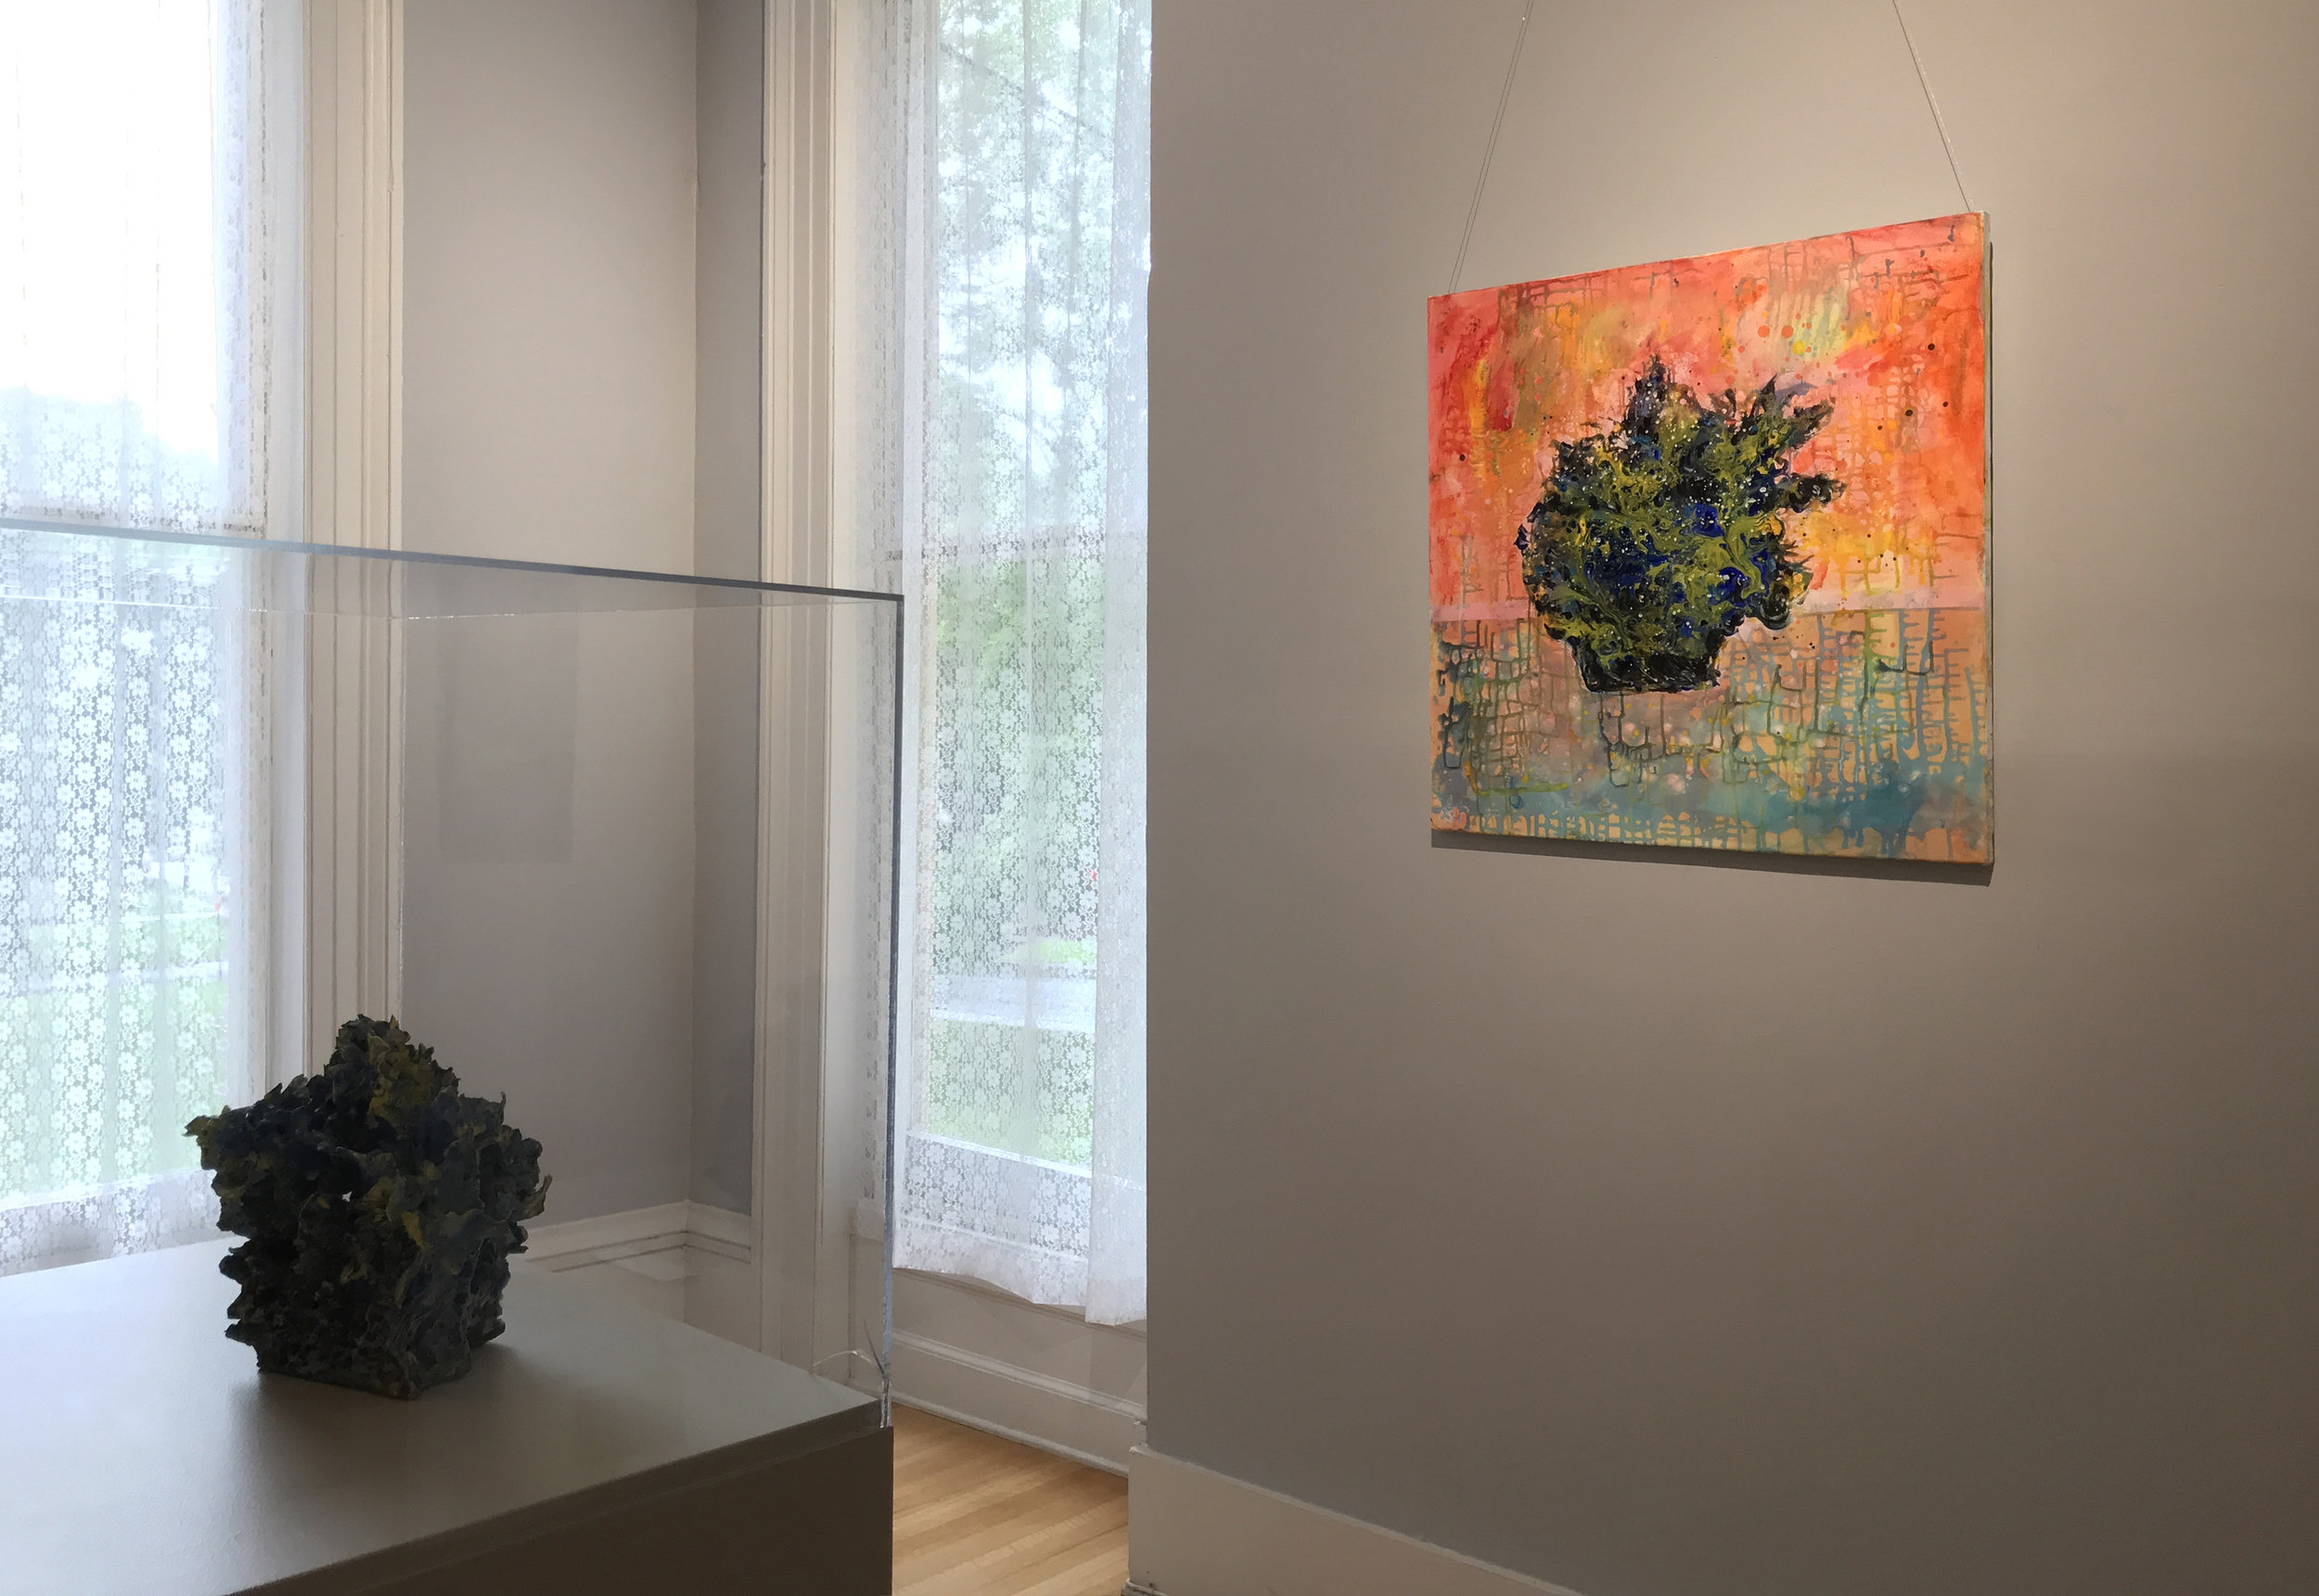 Renqian Yang Solo Exhibition at the Cayuga Museum of History and Art  installation view. Photograph by Echo He, Edited by Yuan Fang. ©Renqian Yang, courtesy Cayuga Museum of History and Art and Fou Gallery.